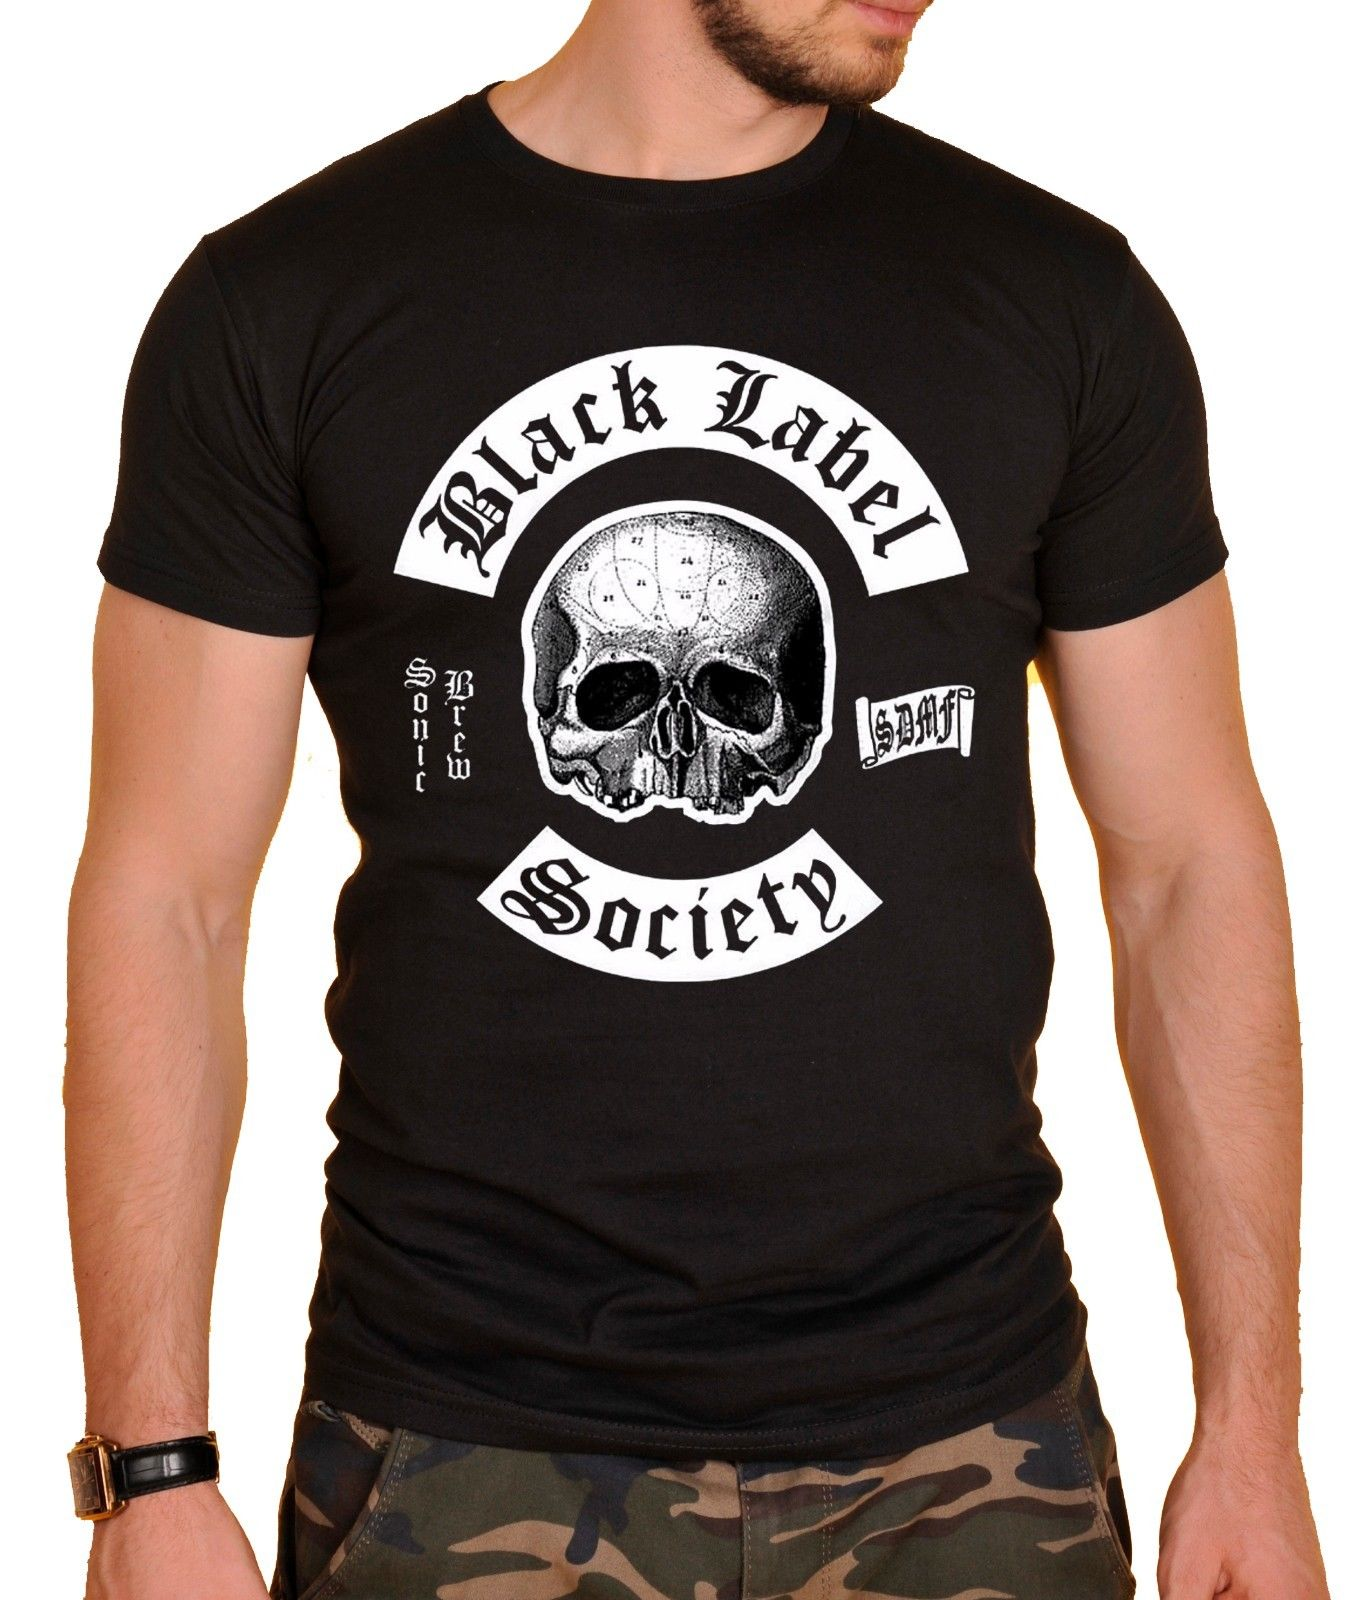 Outlet Choice Official Black Label Society T Shirt Mens Clearance Very Cheap Clearance For Nice Cheap Sale Original Cheap Sale 2018 Newest izVaZ